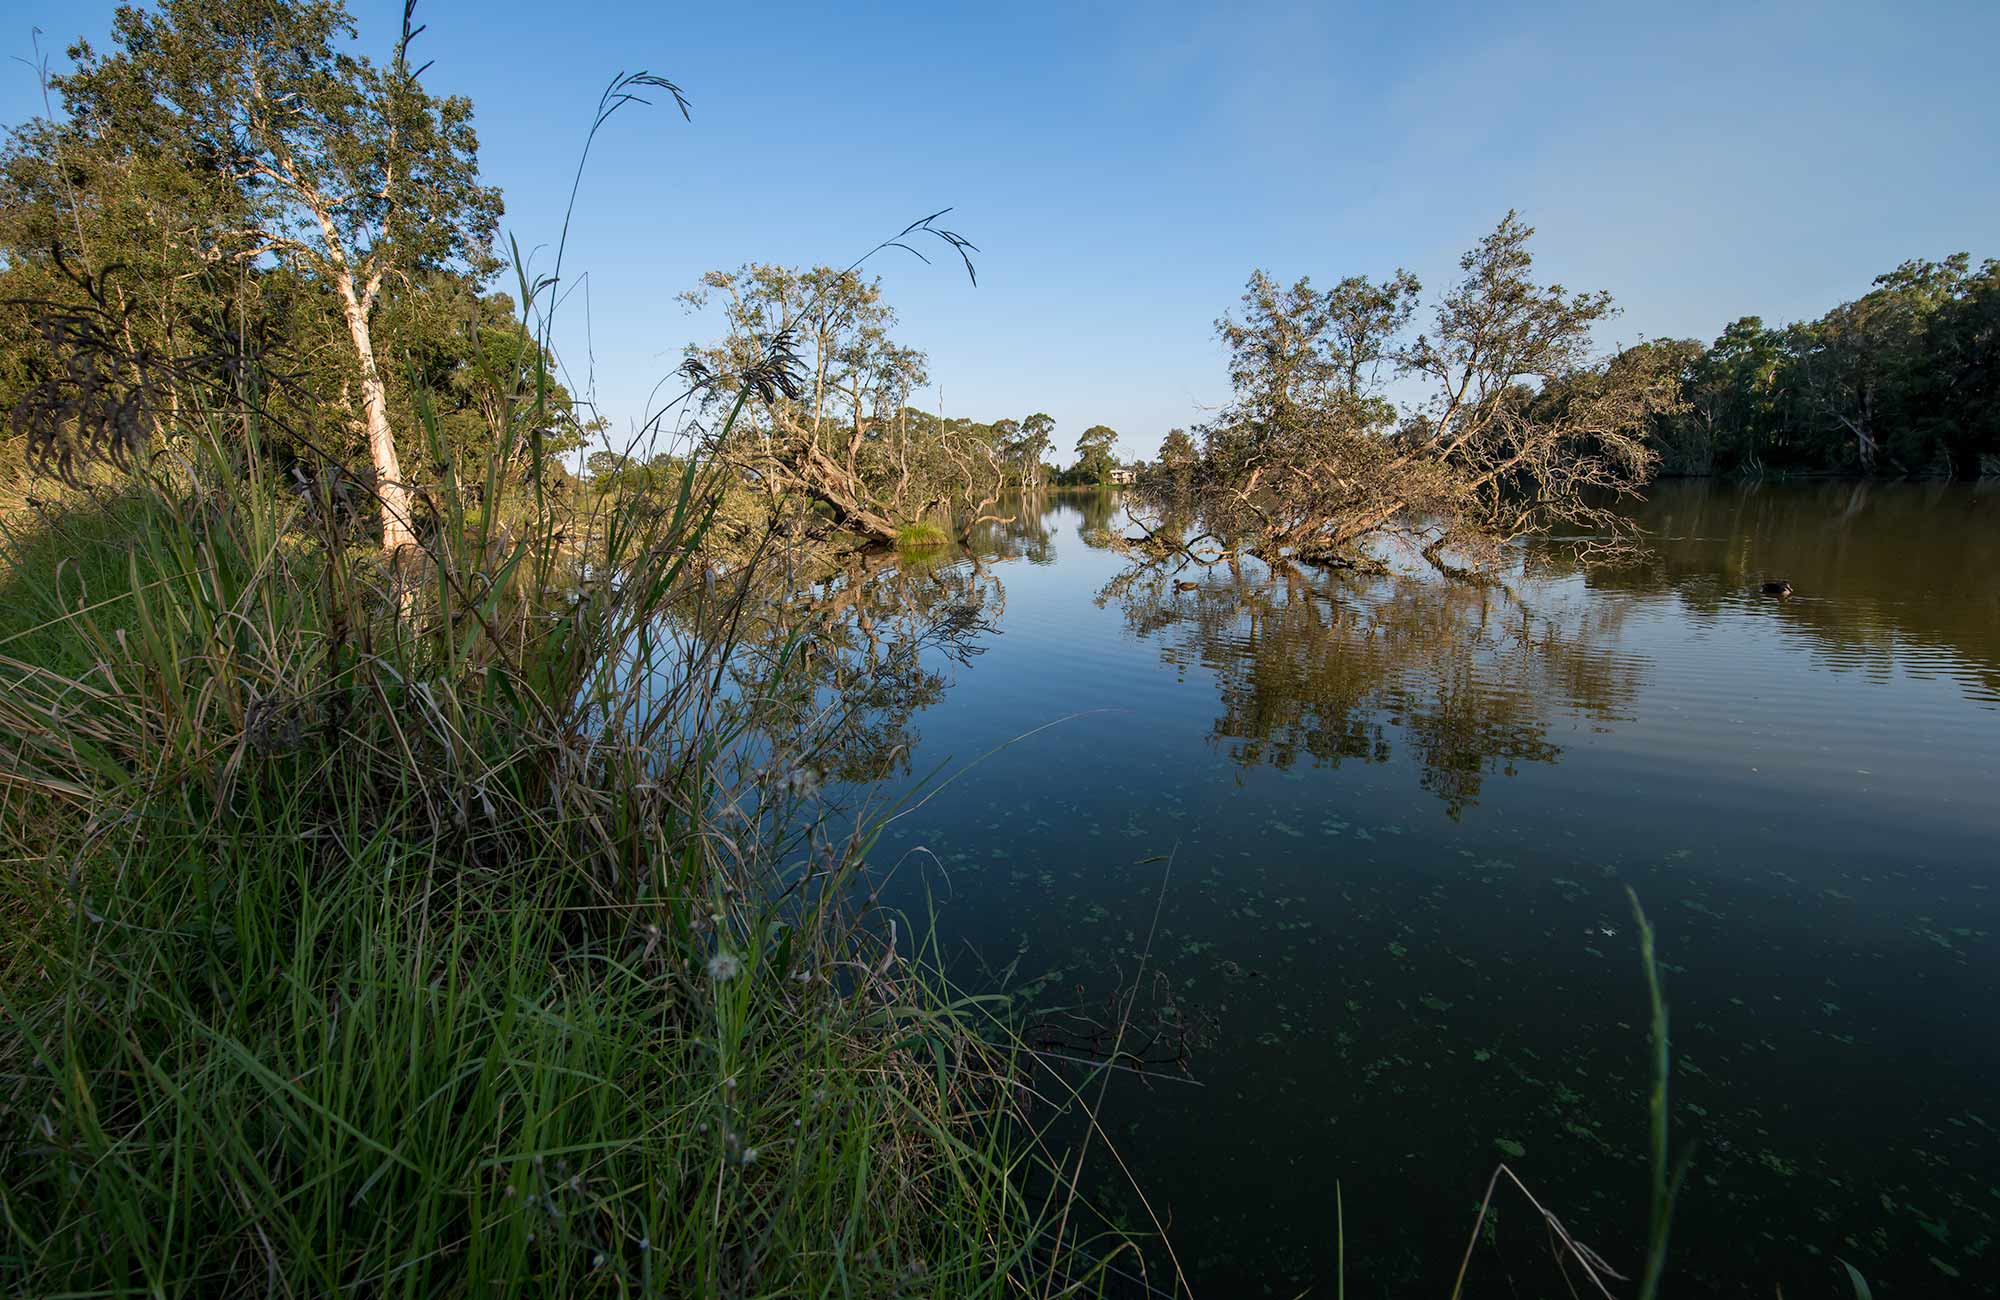 Seaham Swamp Bird Hide, Seaham Swamp Nature Reserve. Photo: John Spencer/NSW Government